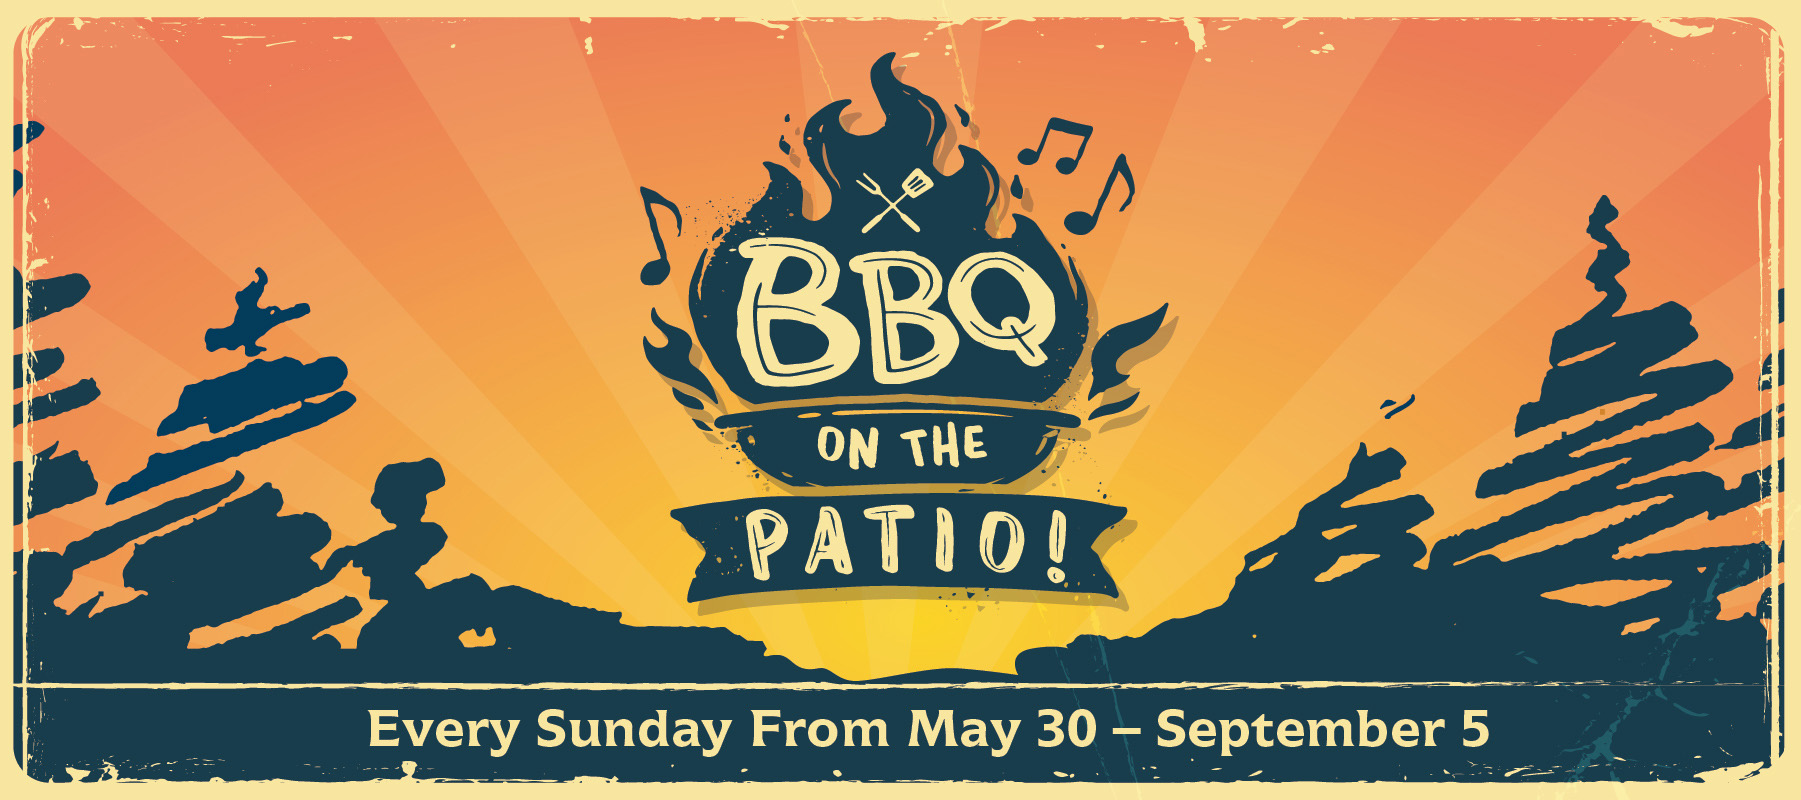 Live Tunes & BBQ on the Patio